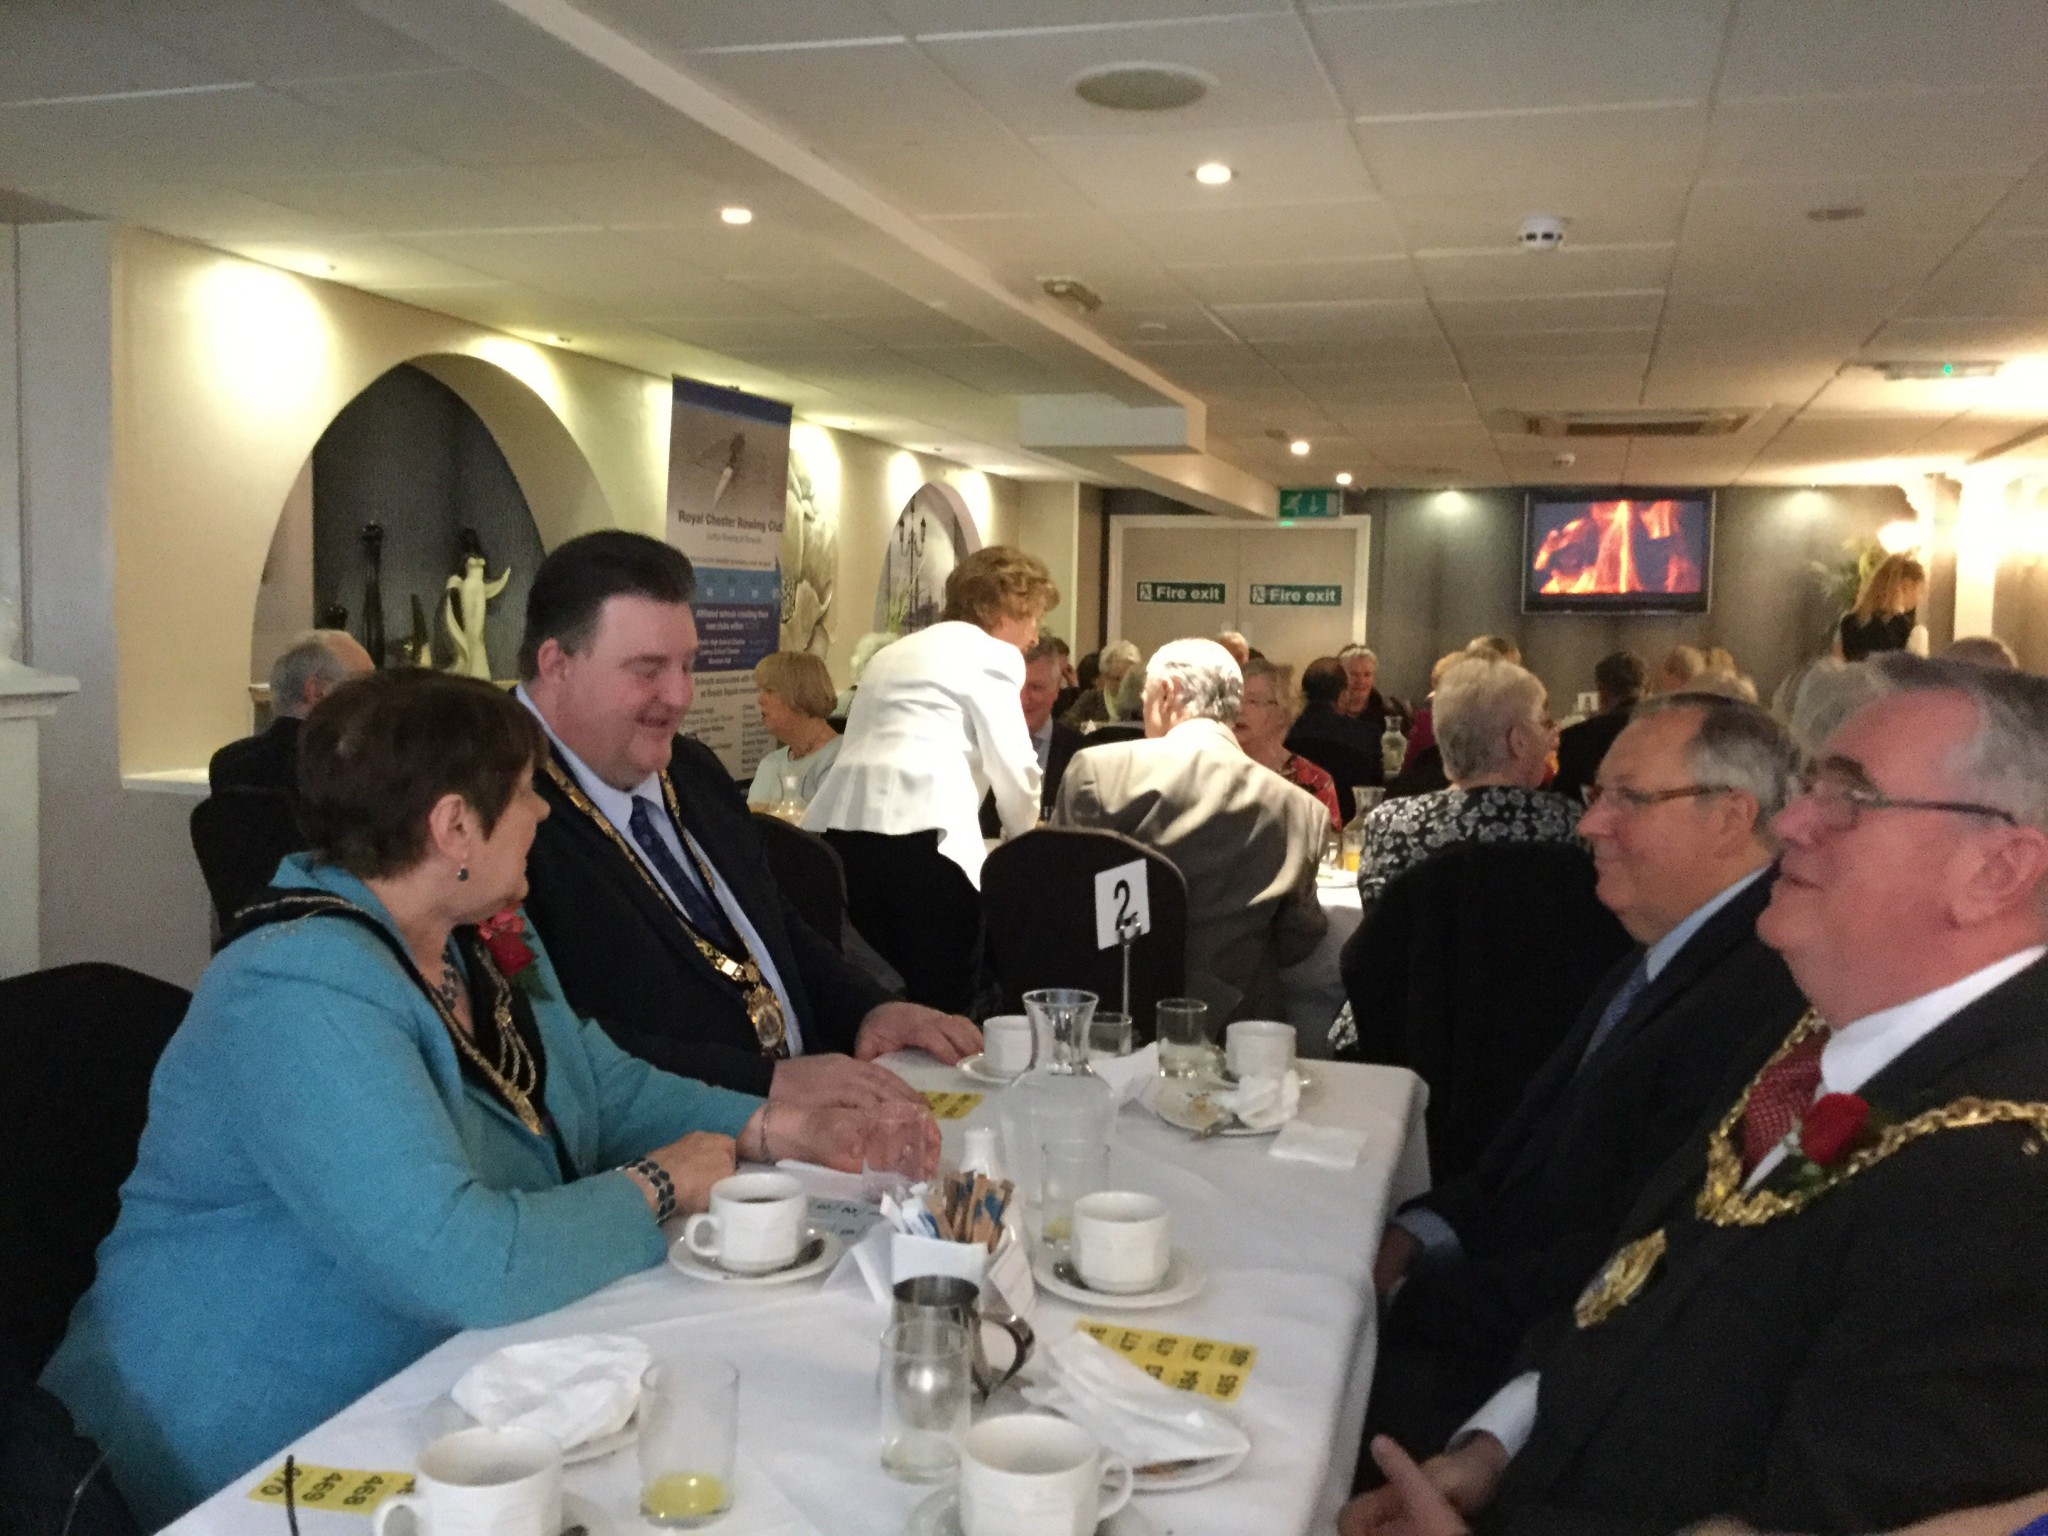 Photo of the Mayor of Frodsham's table companions at the Sheriff of Chester's Breakfast